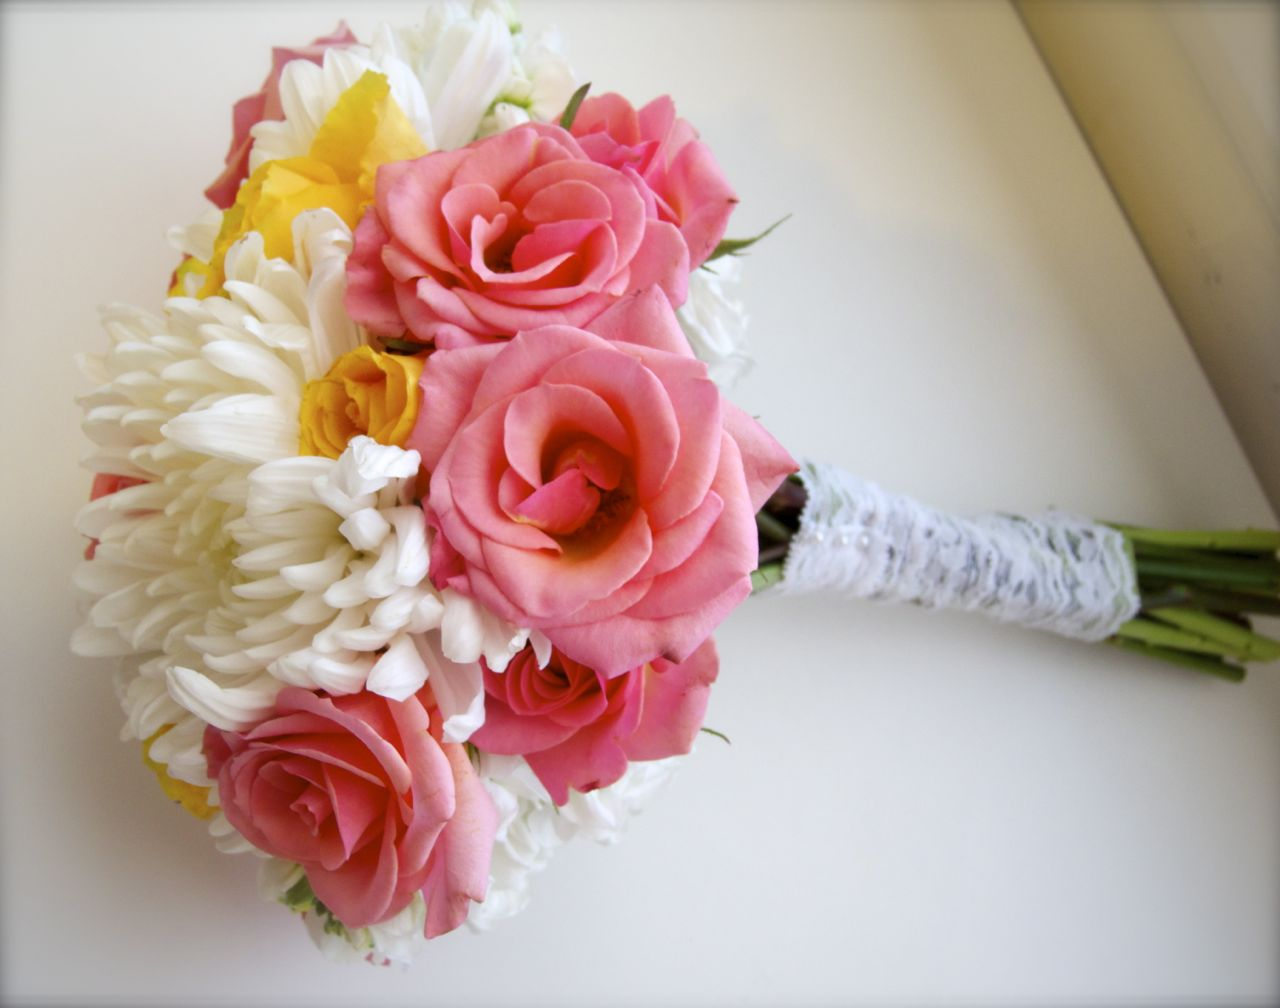 The Flower Girl Blog: White, Coral, And Yellow Bridal Bouquet